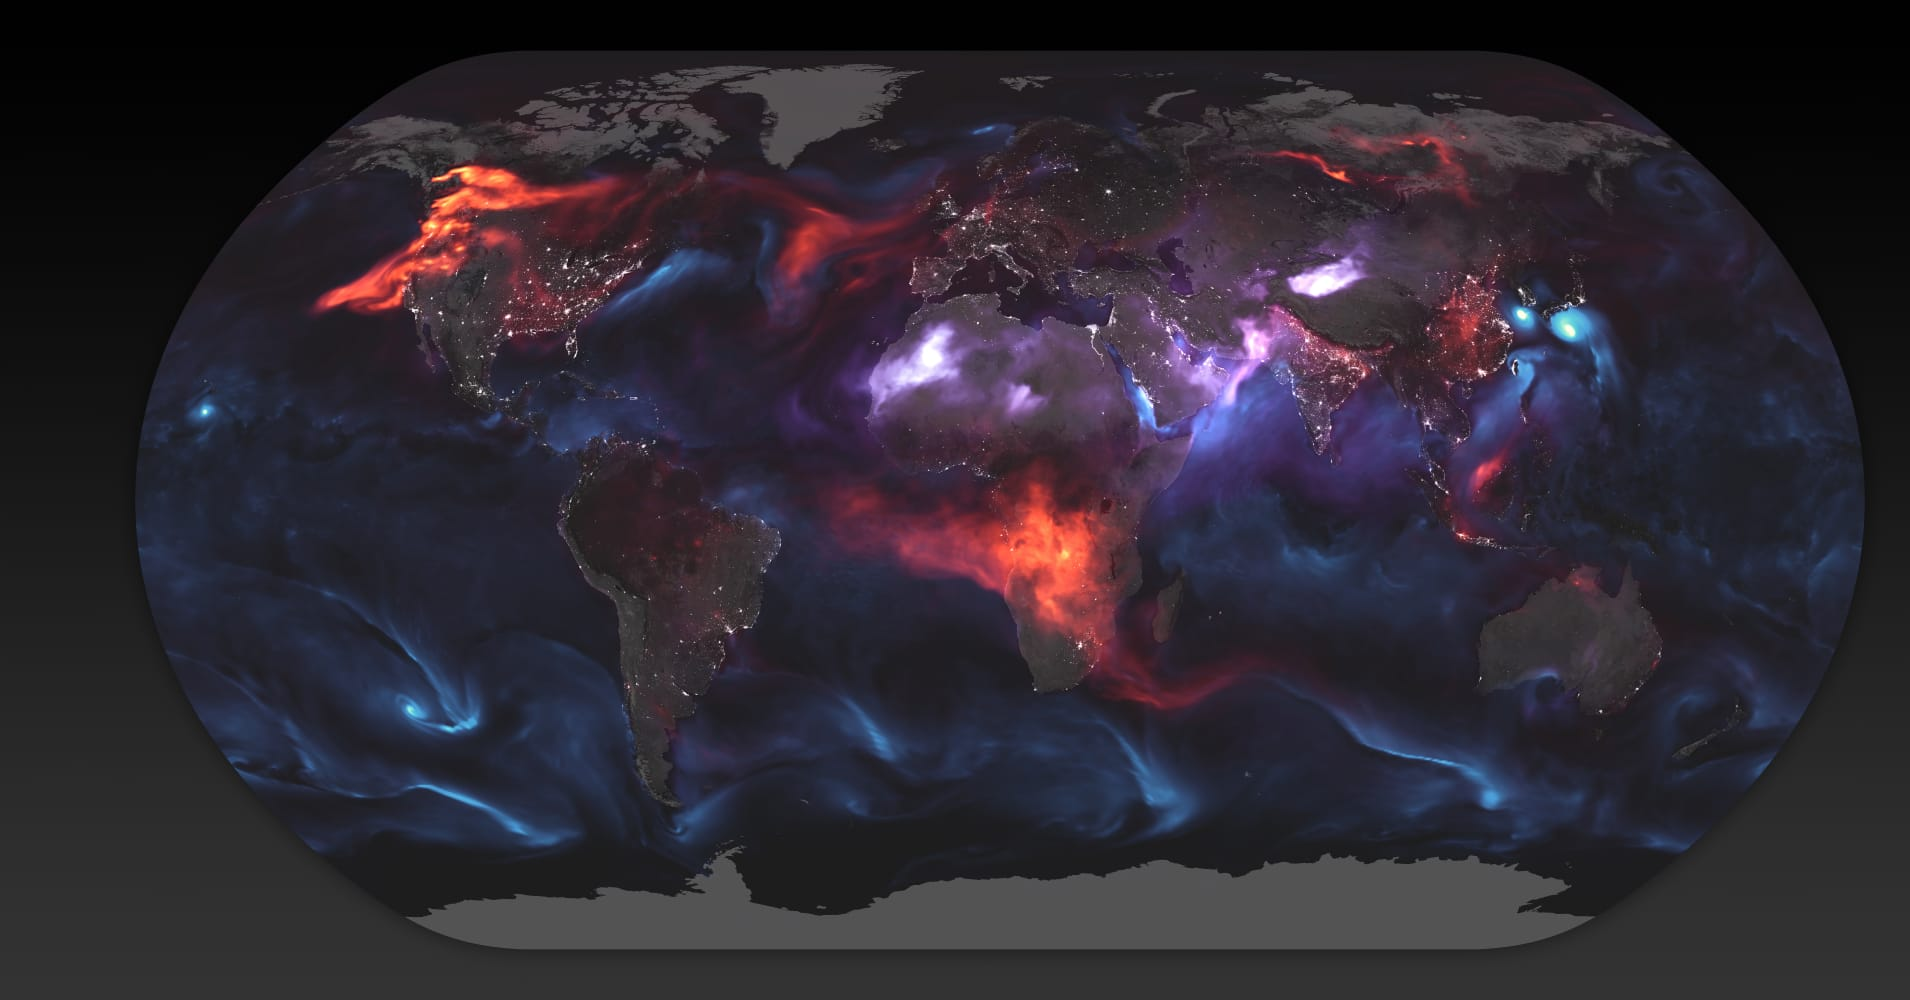 A visualization of the particles and droplets in the air from the NASA Earth Observatory.